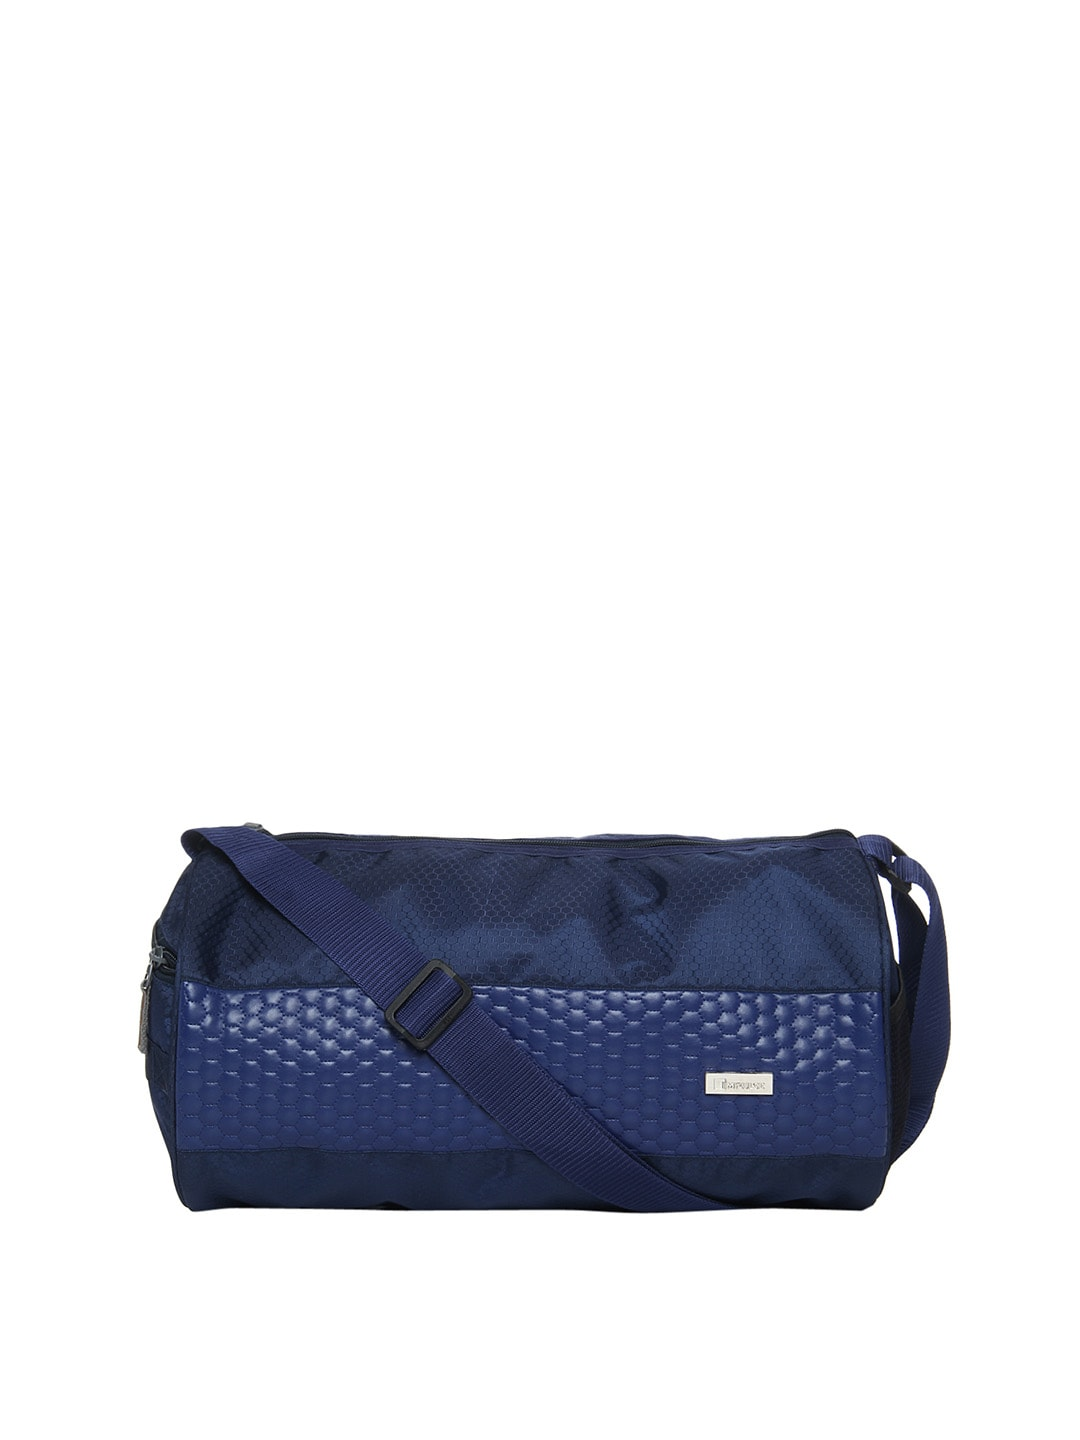 Gym Bags For Men - Buy Mens Gym Bag Online in India   Myntra 829e6f48a0